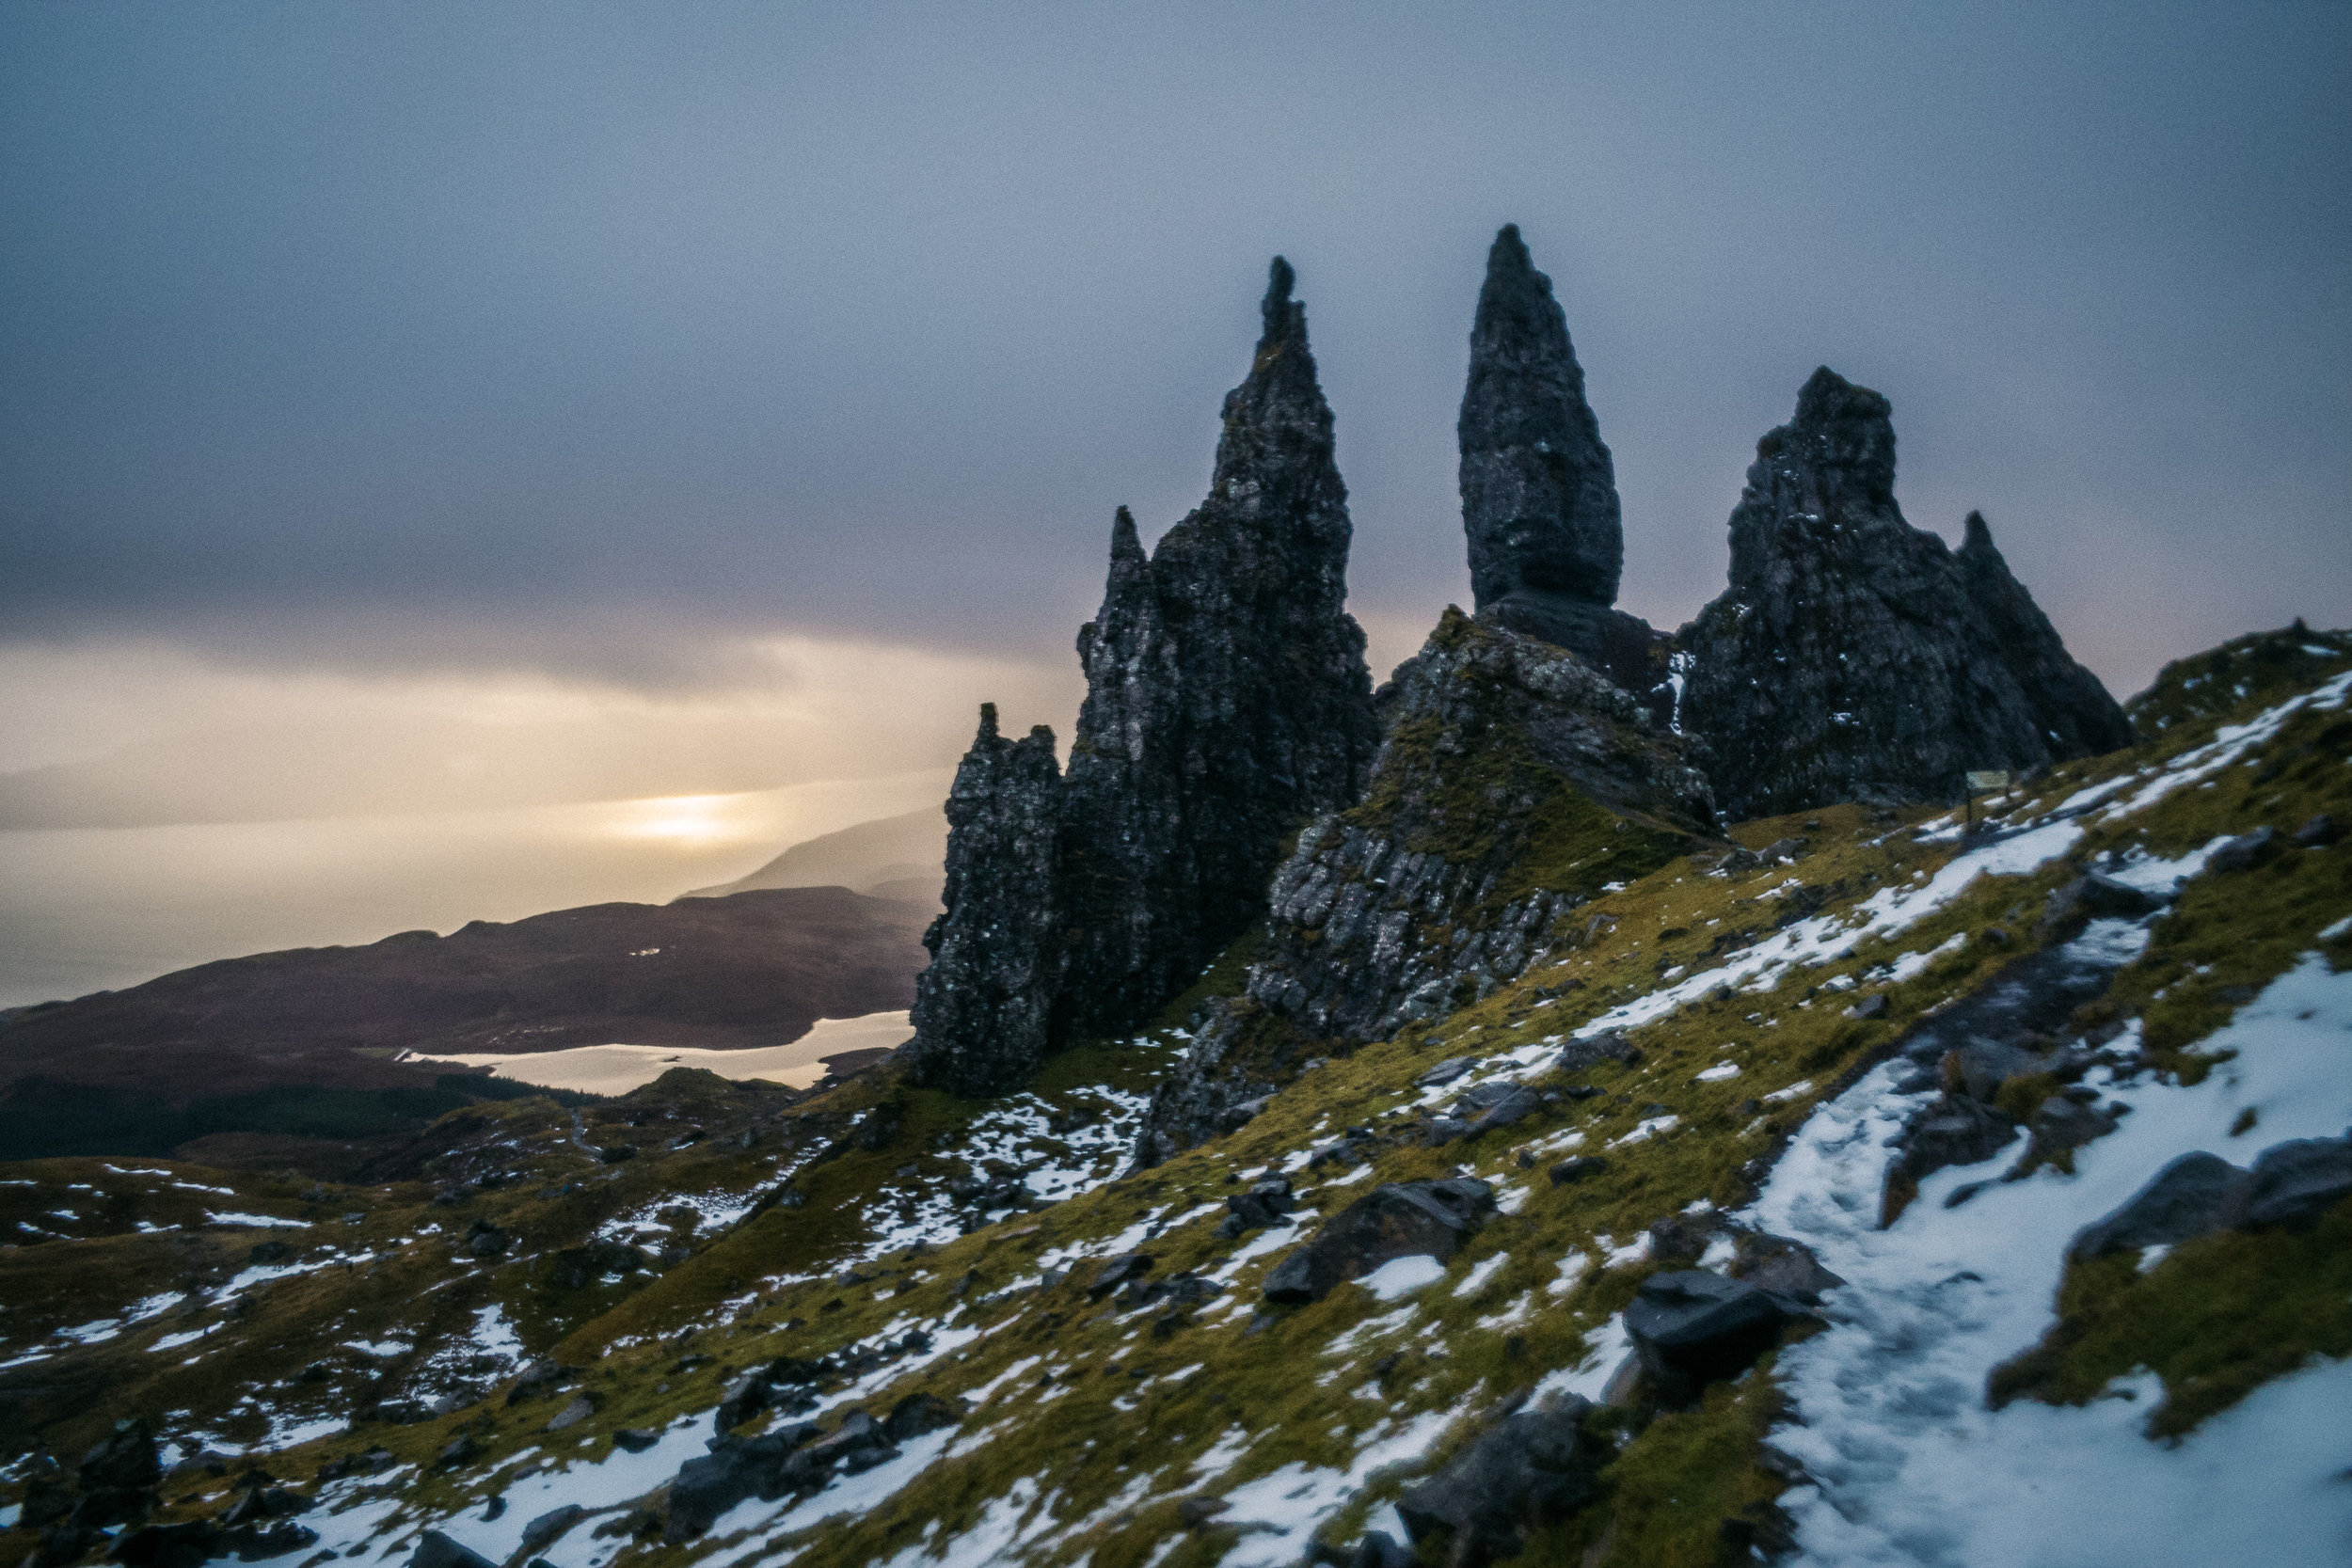 Where we hiked up to watch the sunrise over Old Man of Storr ..